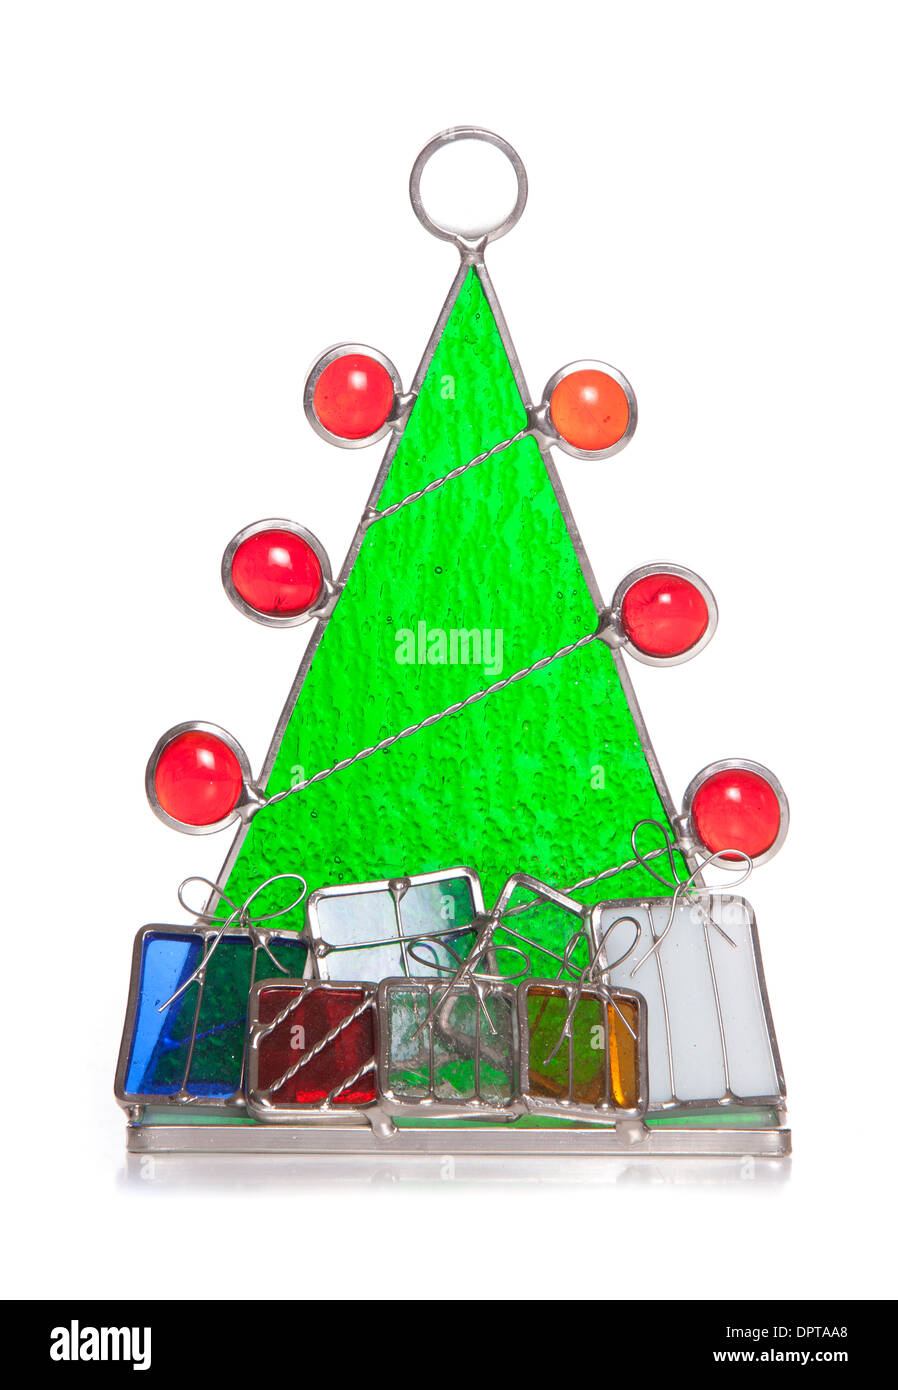 Christmas Stained Glass Ornaments Part - 28: Stock Photo - Christmas Tree Stained Glass Ornament Cutout